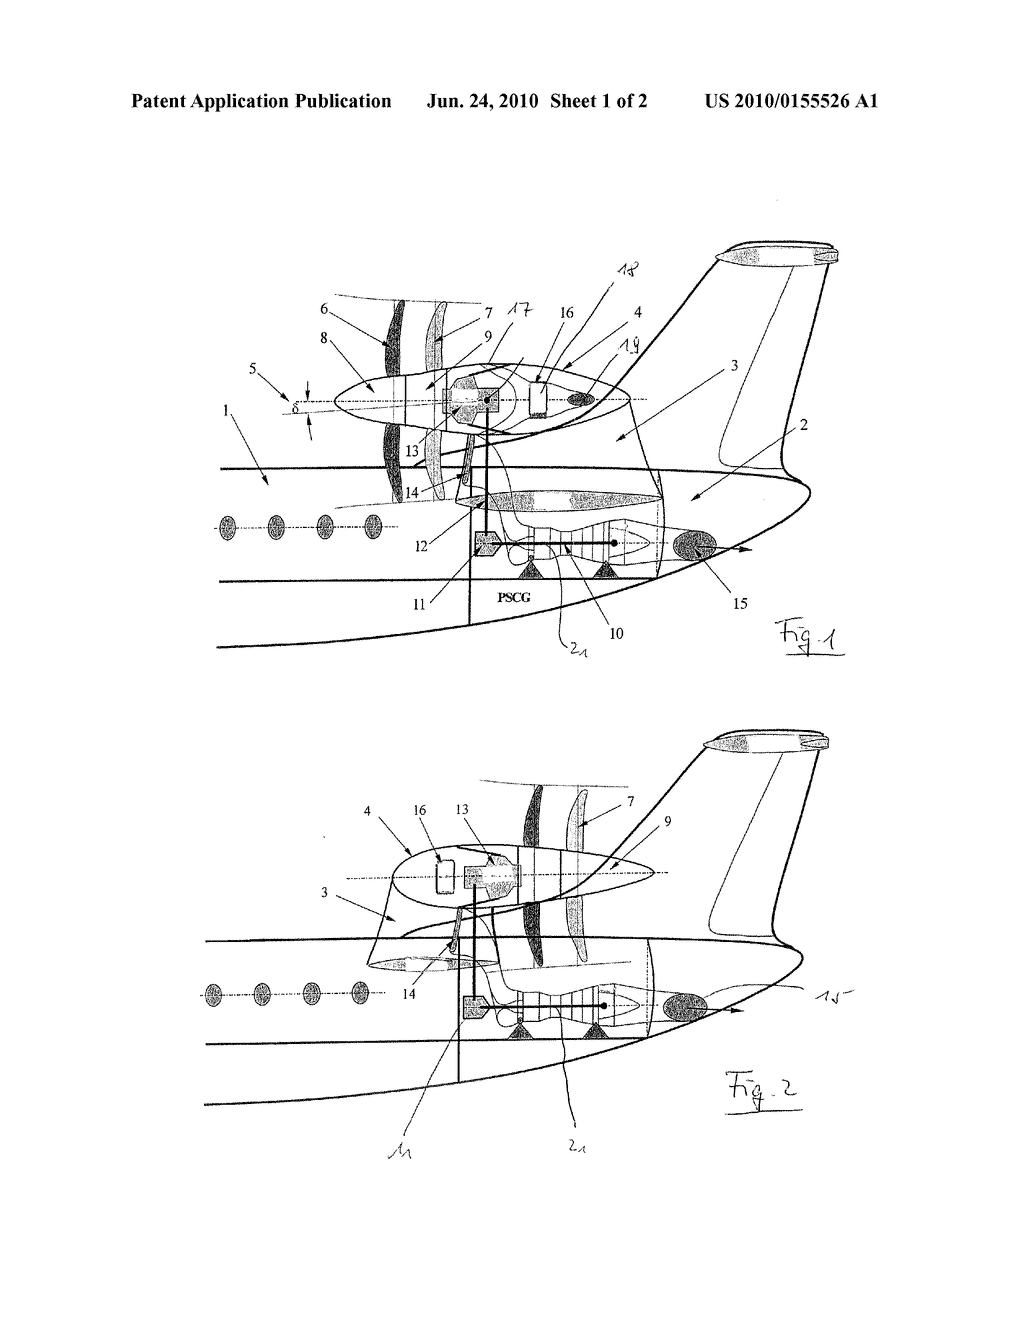 hight resolution of aircraft with tail propeller engine layout diagram schematic and image 02